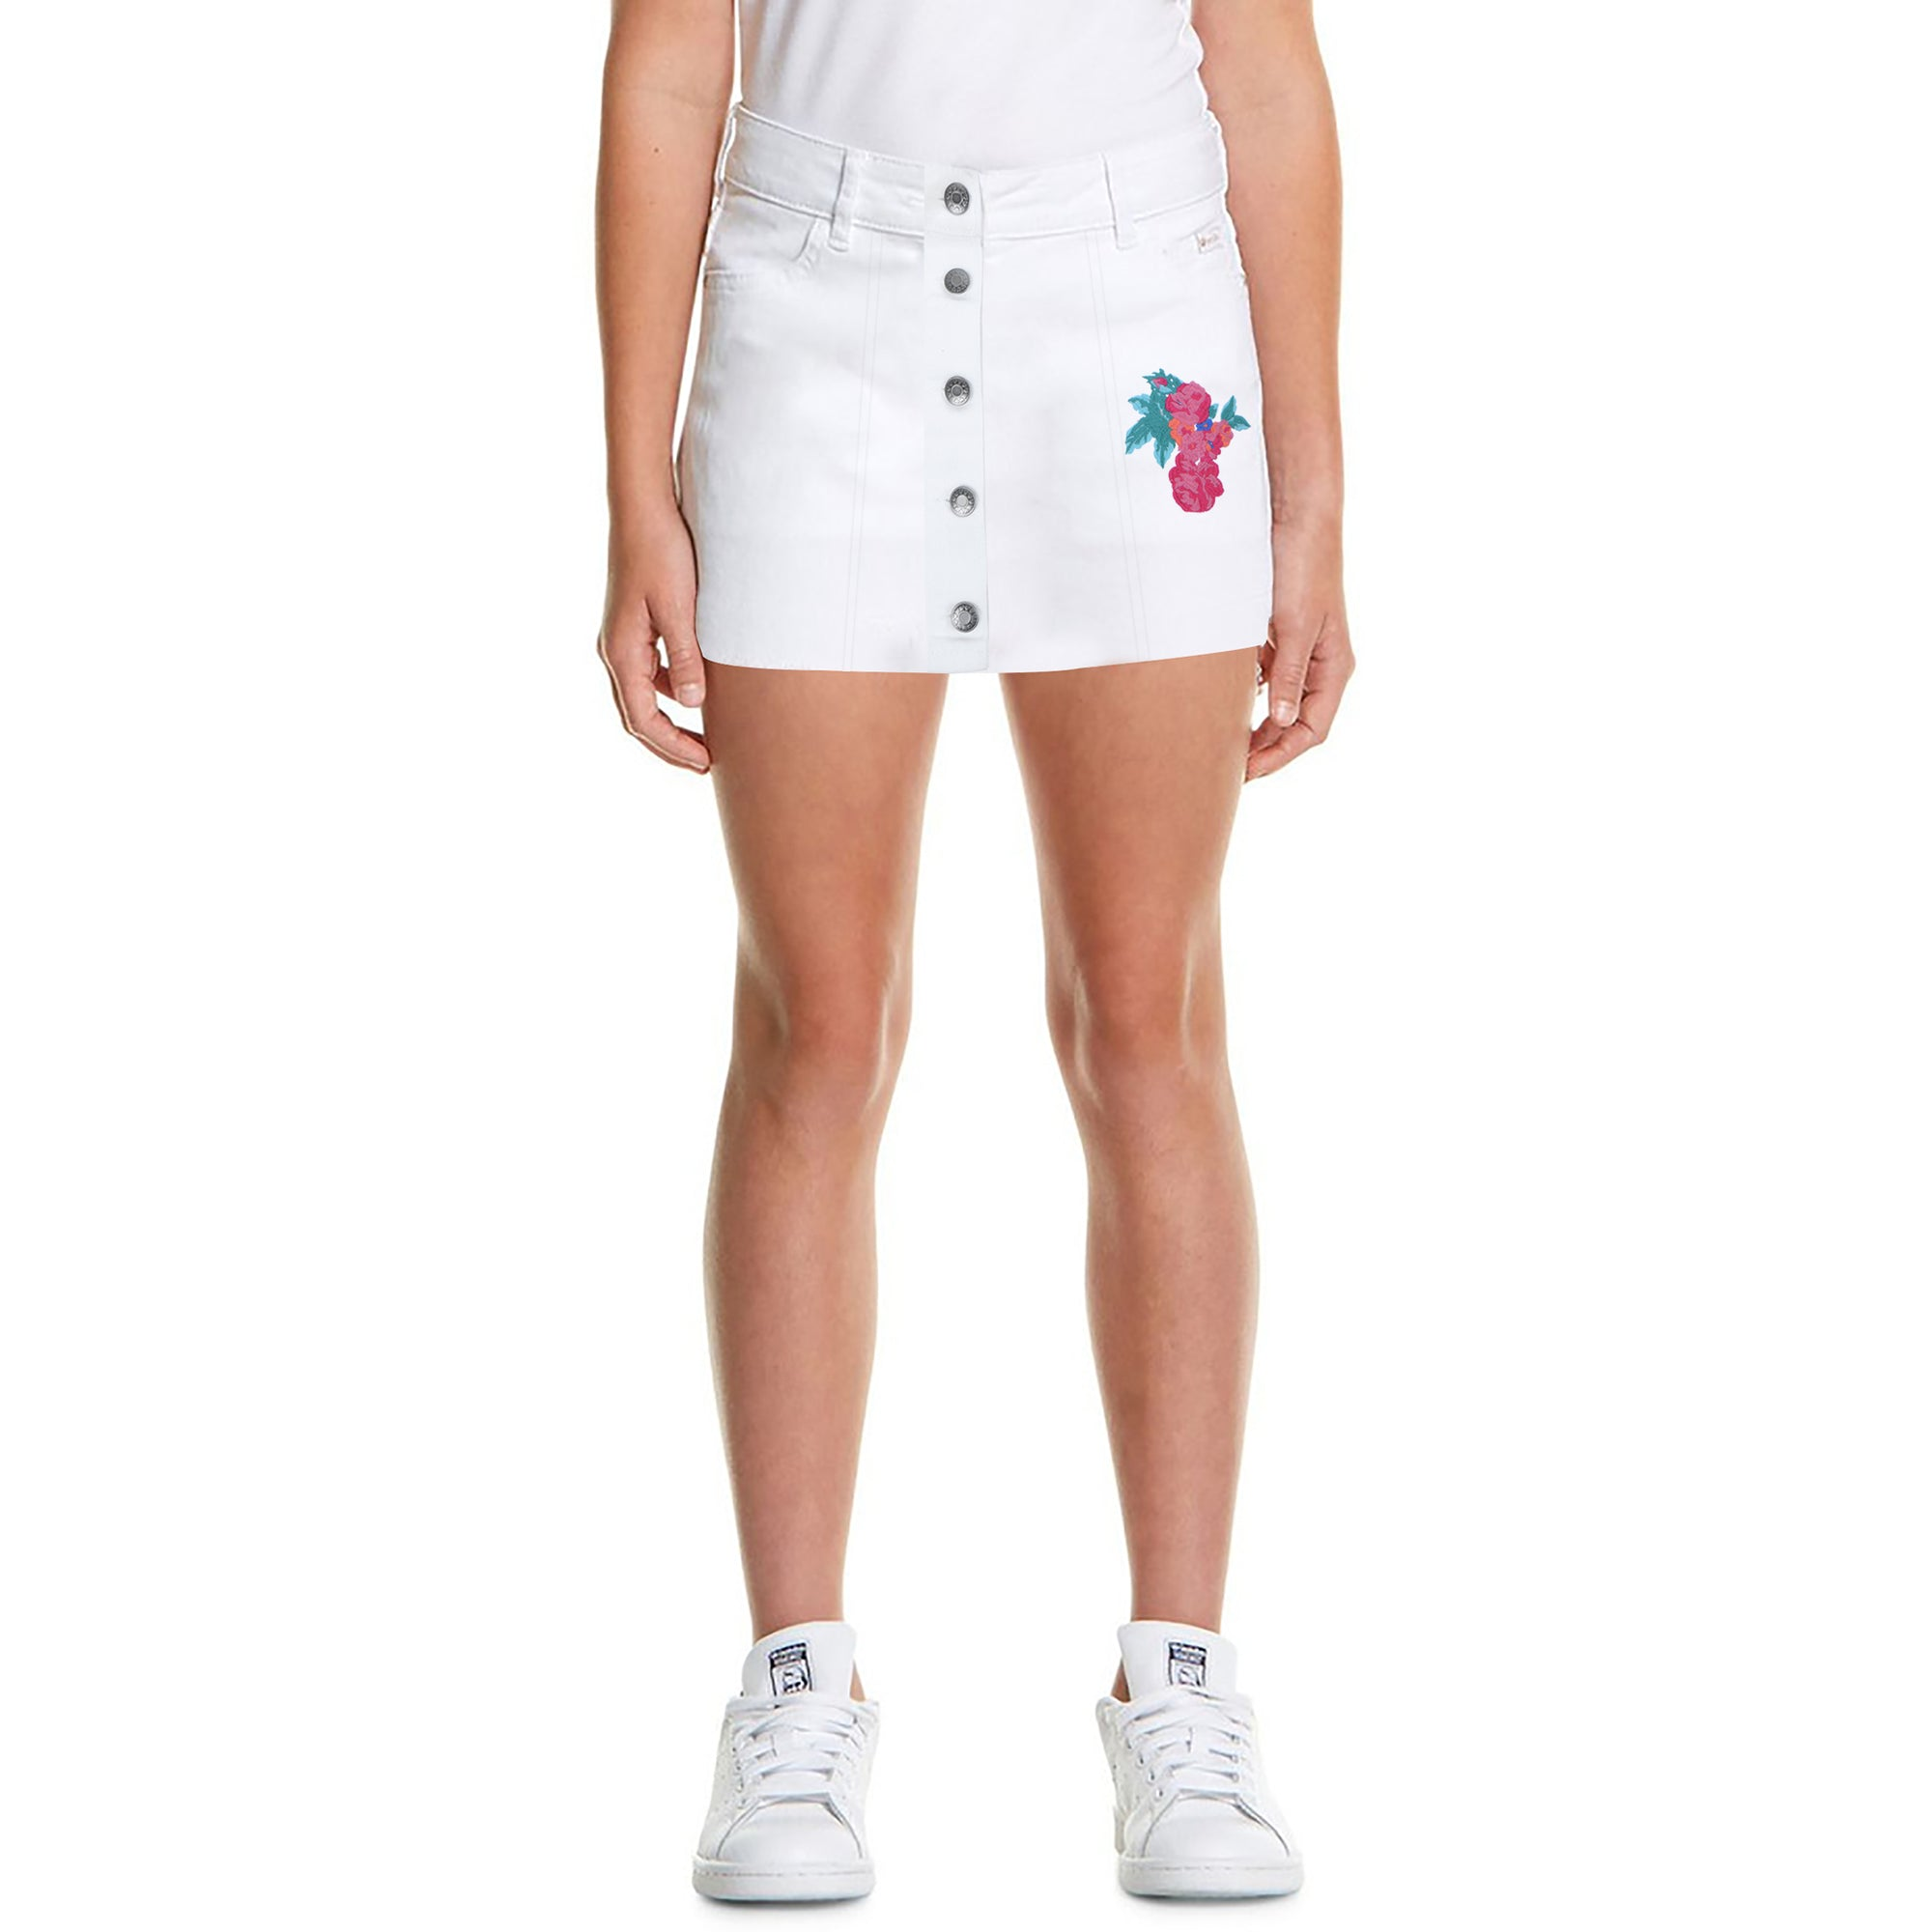 brandsego - Juniors Denim Skirt For Girls-White-BE7067